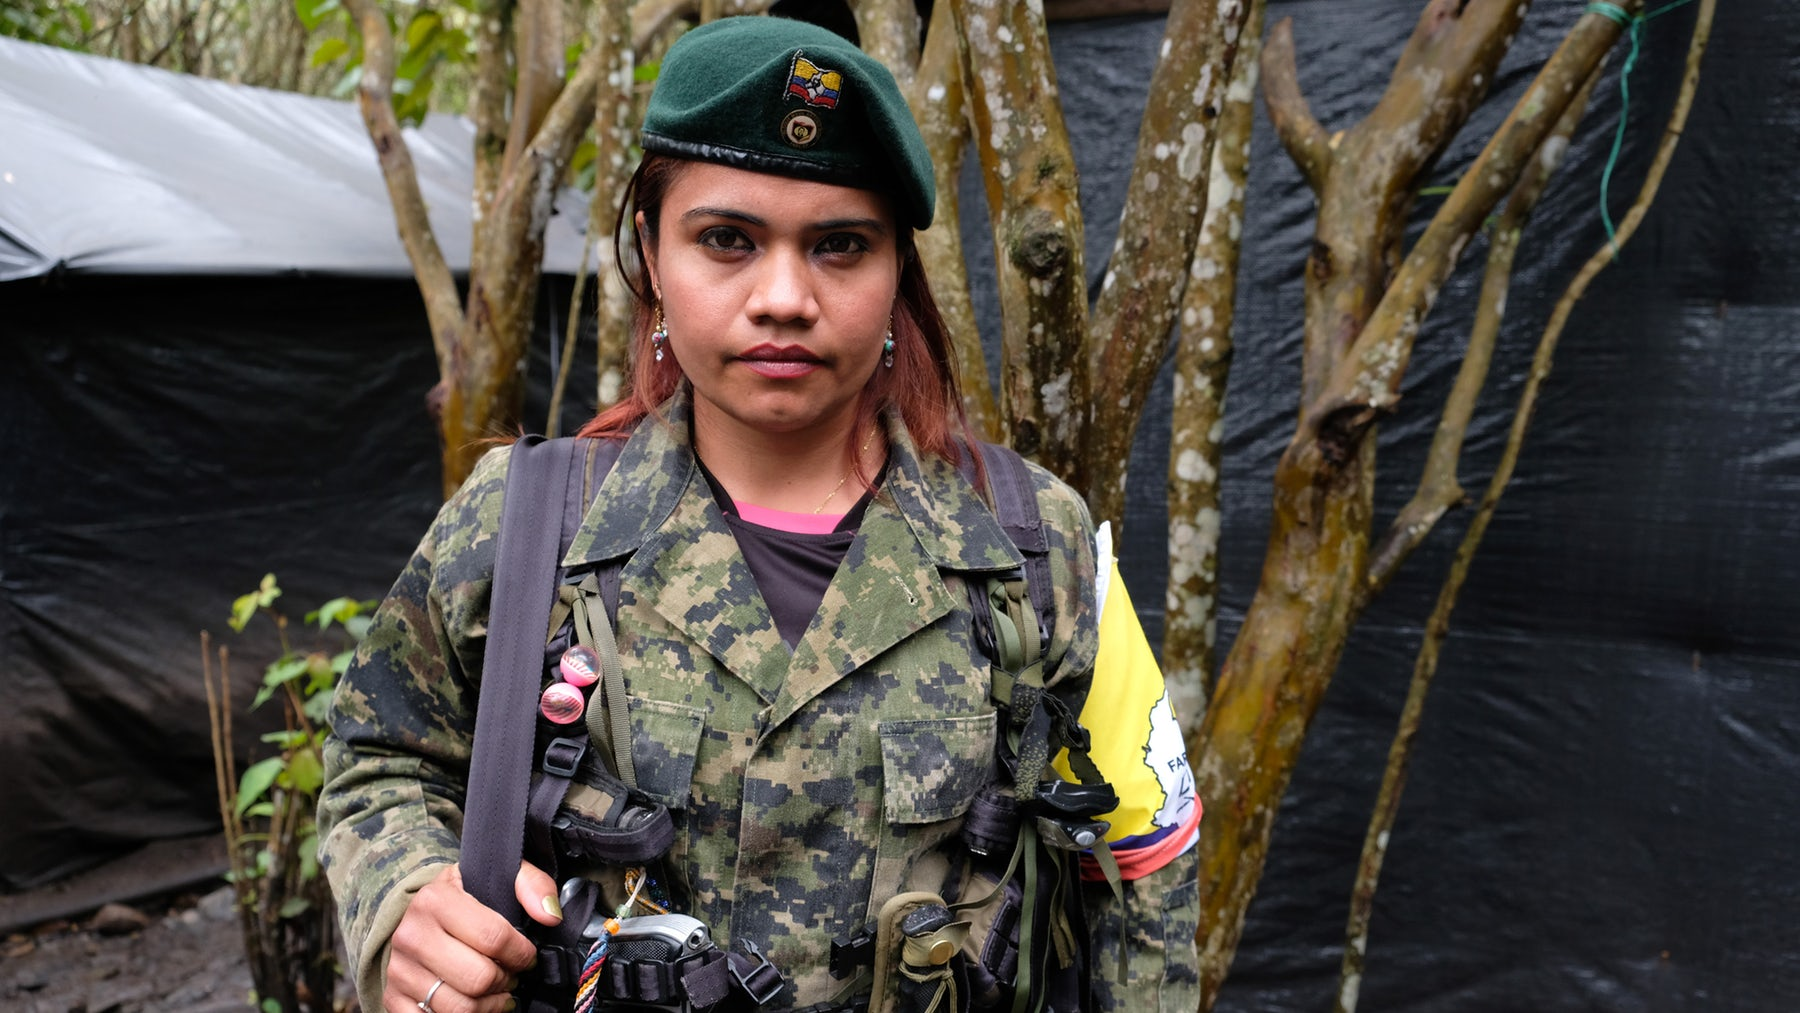 A female FARC guerrilla fighter dressed and armed in full combat gear | Source: Getty